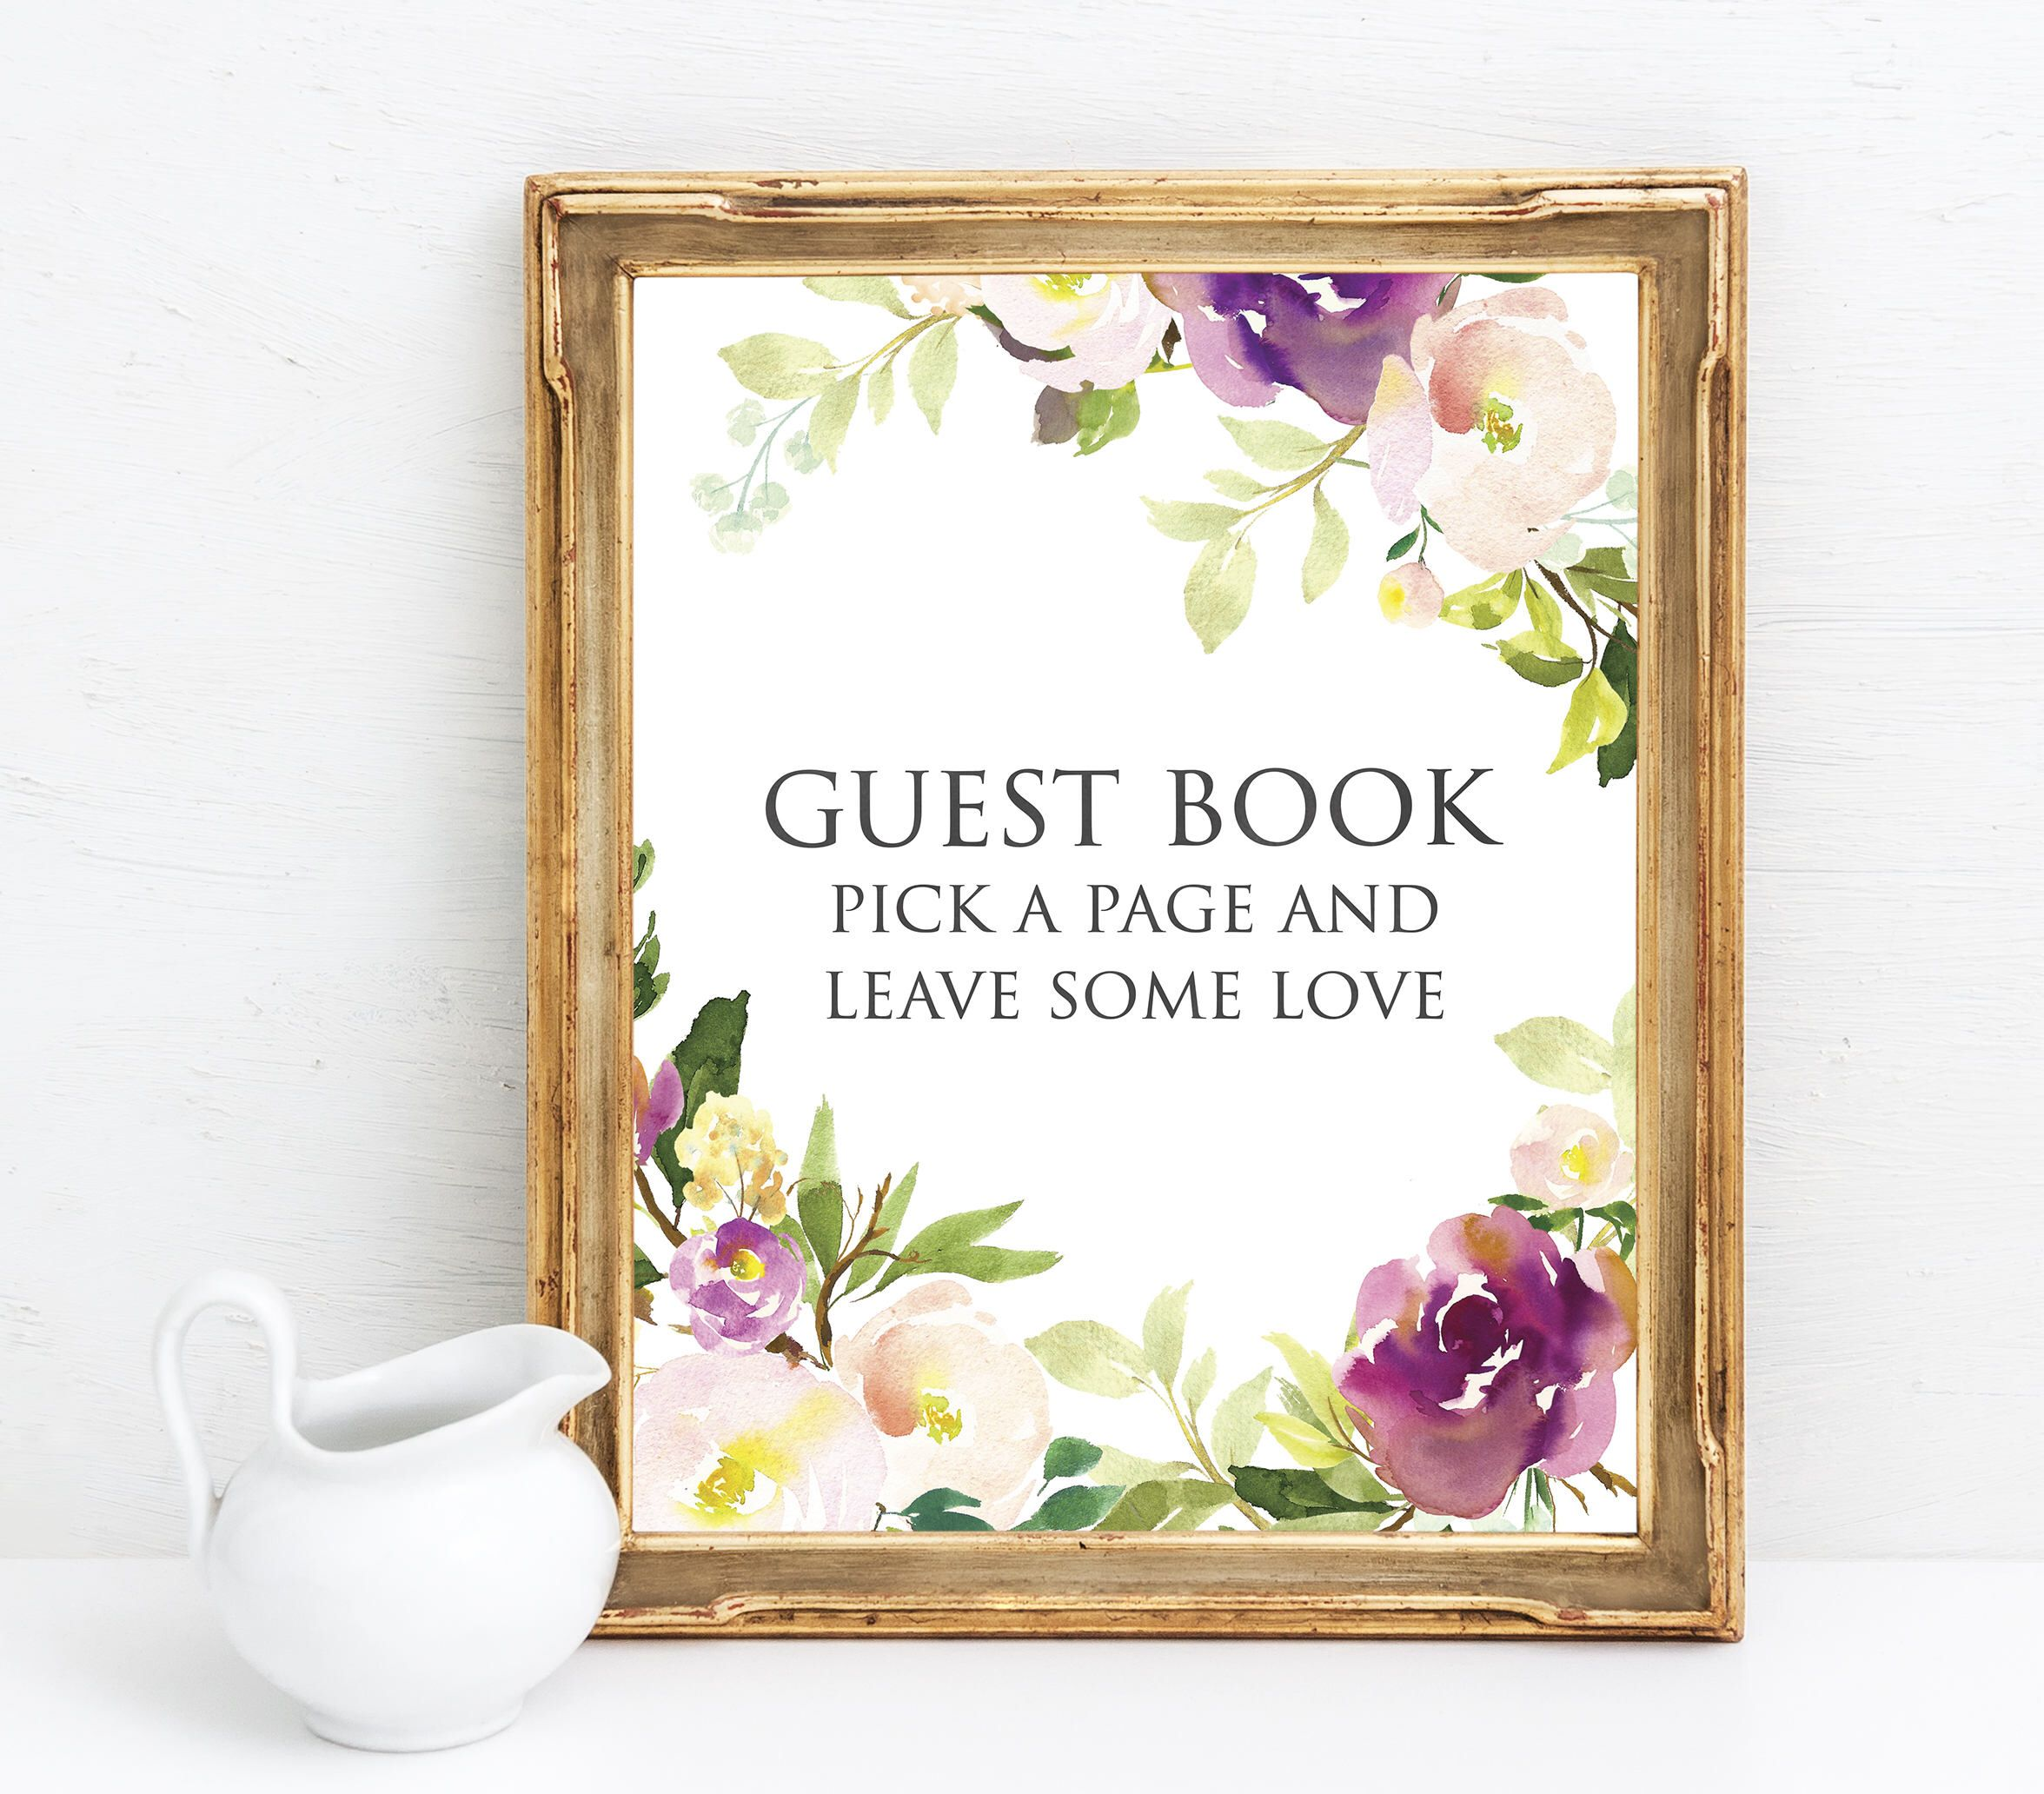 Lavender decor for wedding Guest Book Sign Printable  Lavender and Plum Wedding Decor  Guest